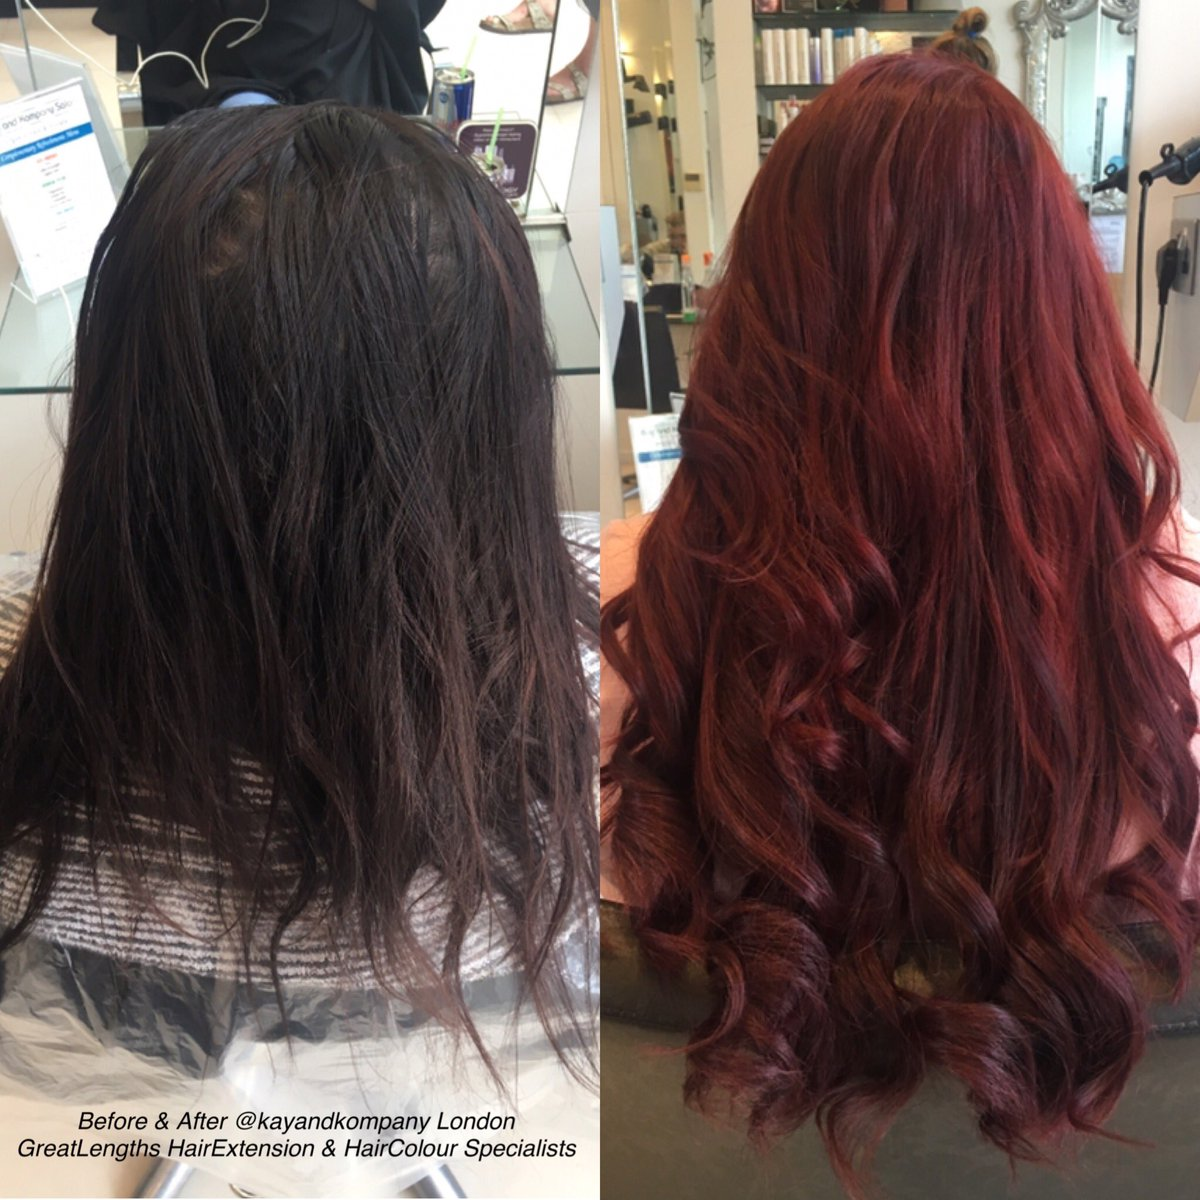 Wow! Insane transformation by our Lauren @ #kayandkompany  #hair was colour-corrected to match #hairextensions  #greatlengths #newhair #n10<br>http://pic.twitter.com/joN4A6Wghk